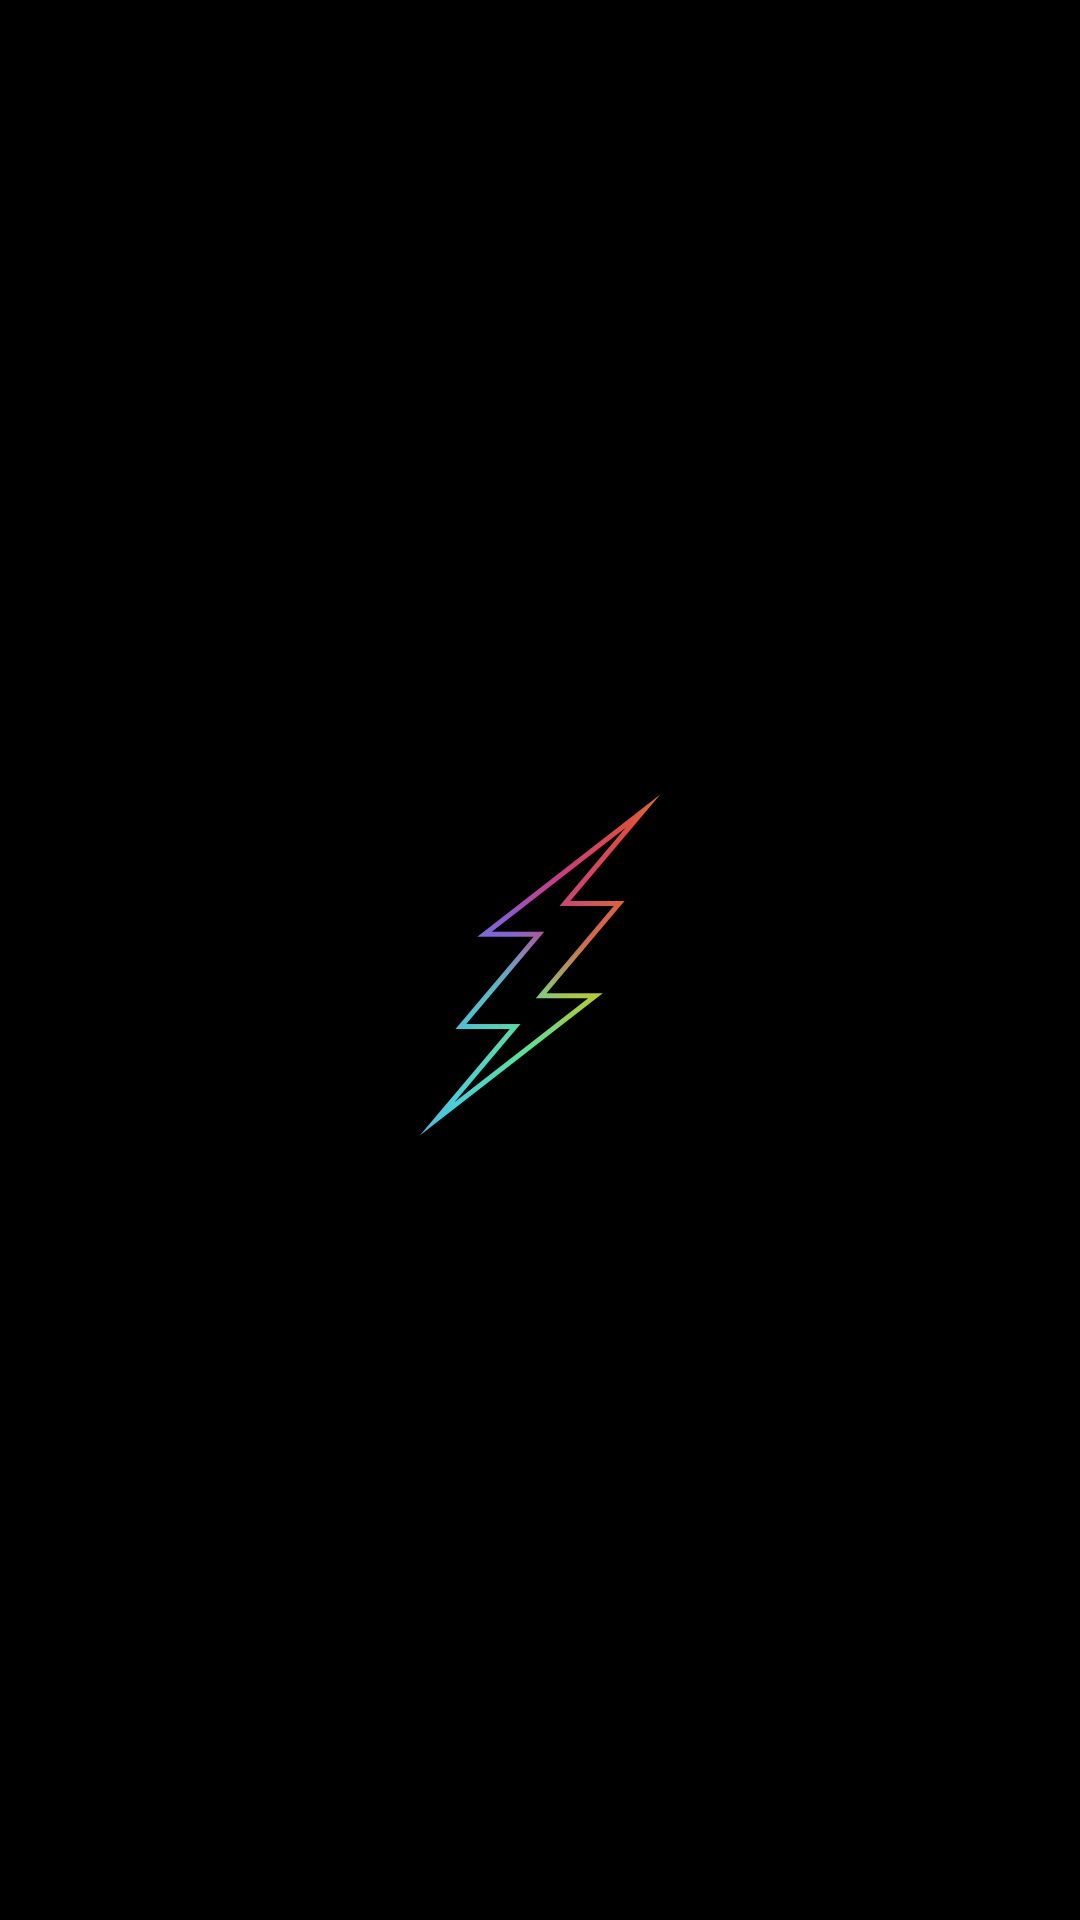 Minimal Flash Colorful Logo Minimal Wallpaper Minimal Wallpaper Flash Wallpaper Iphone Wallpaper For Guys